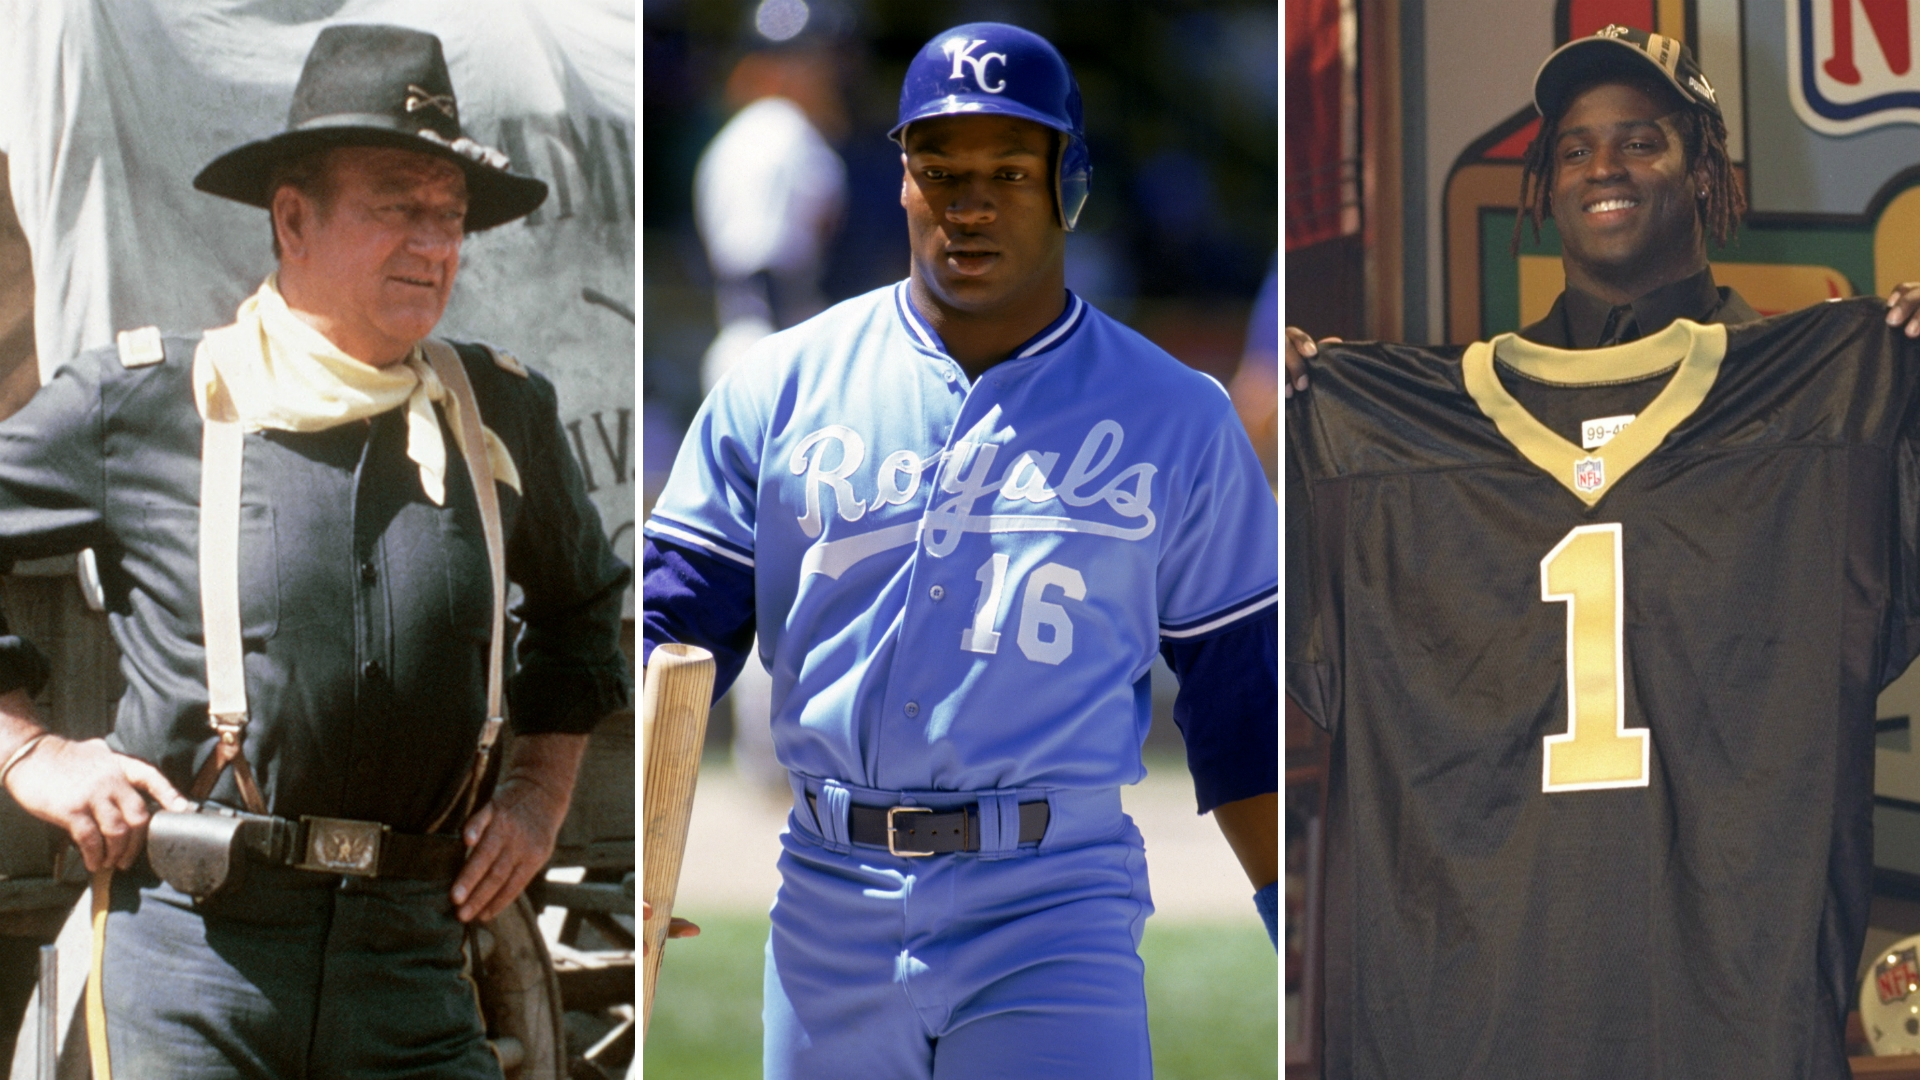 Split-john-wayne-bo-jackson-ricky-williams-getty-ftr-042316_1kb2y1d53sxd510t3vxgr28zjg